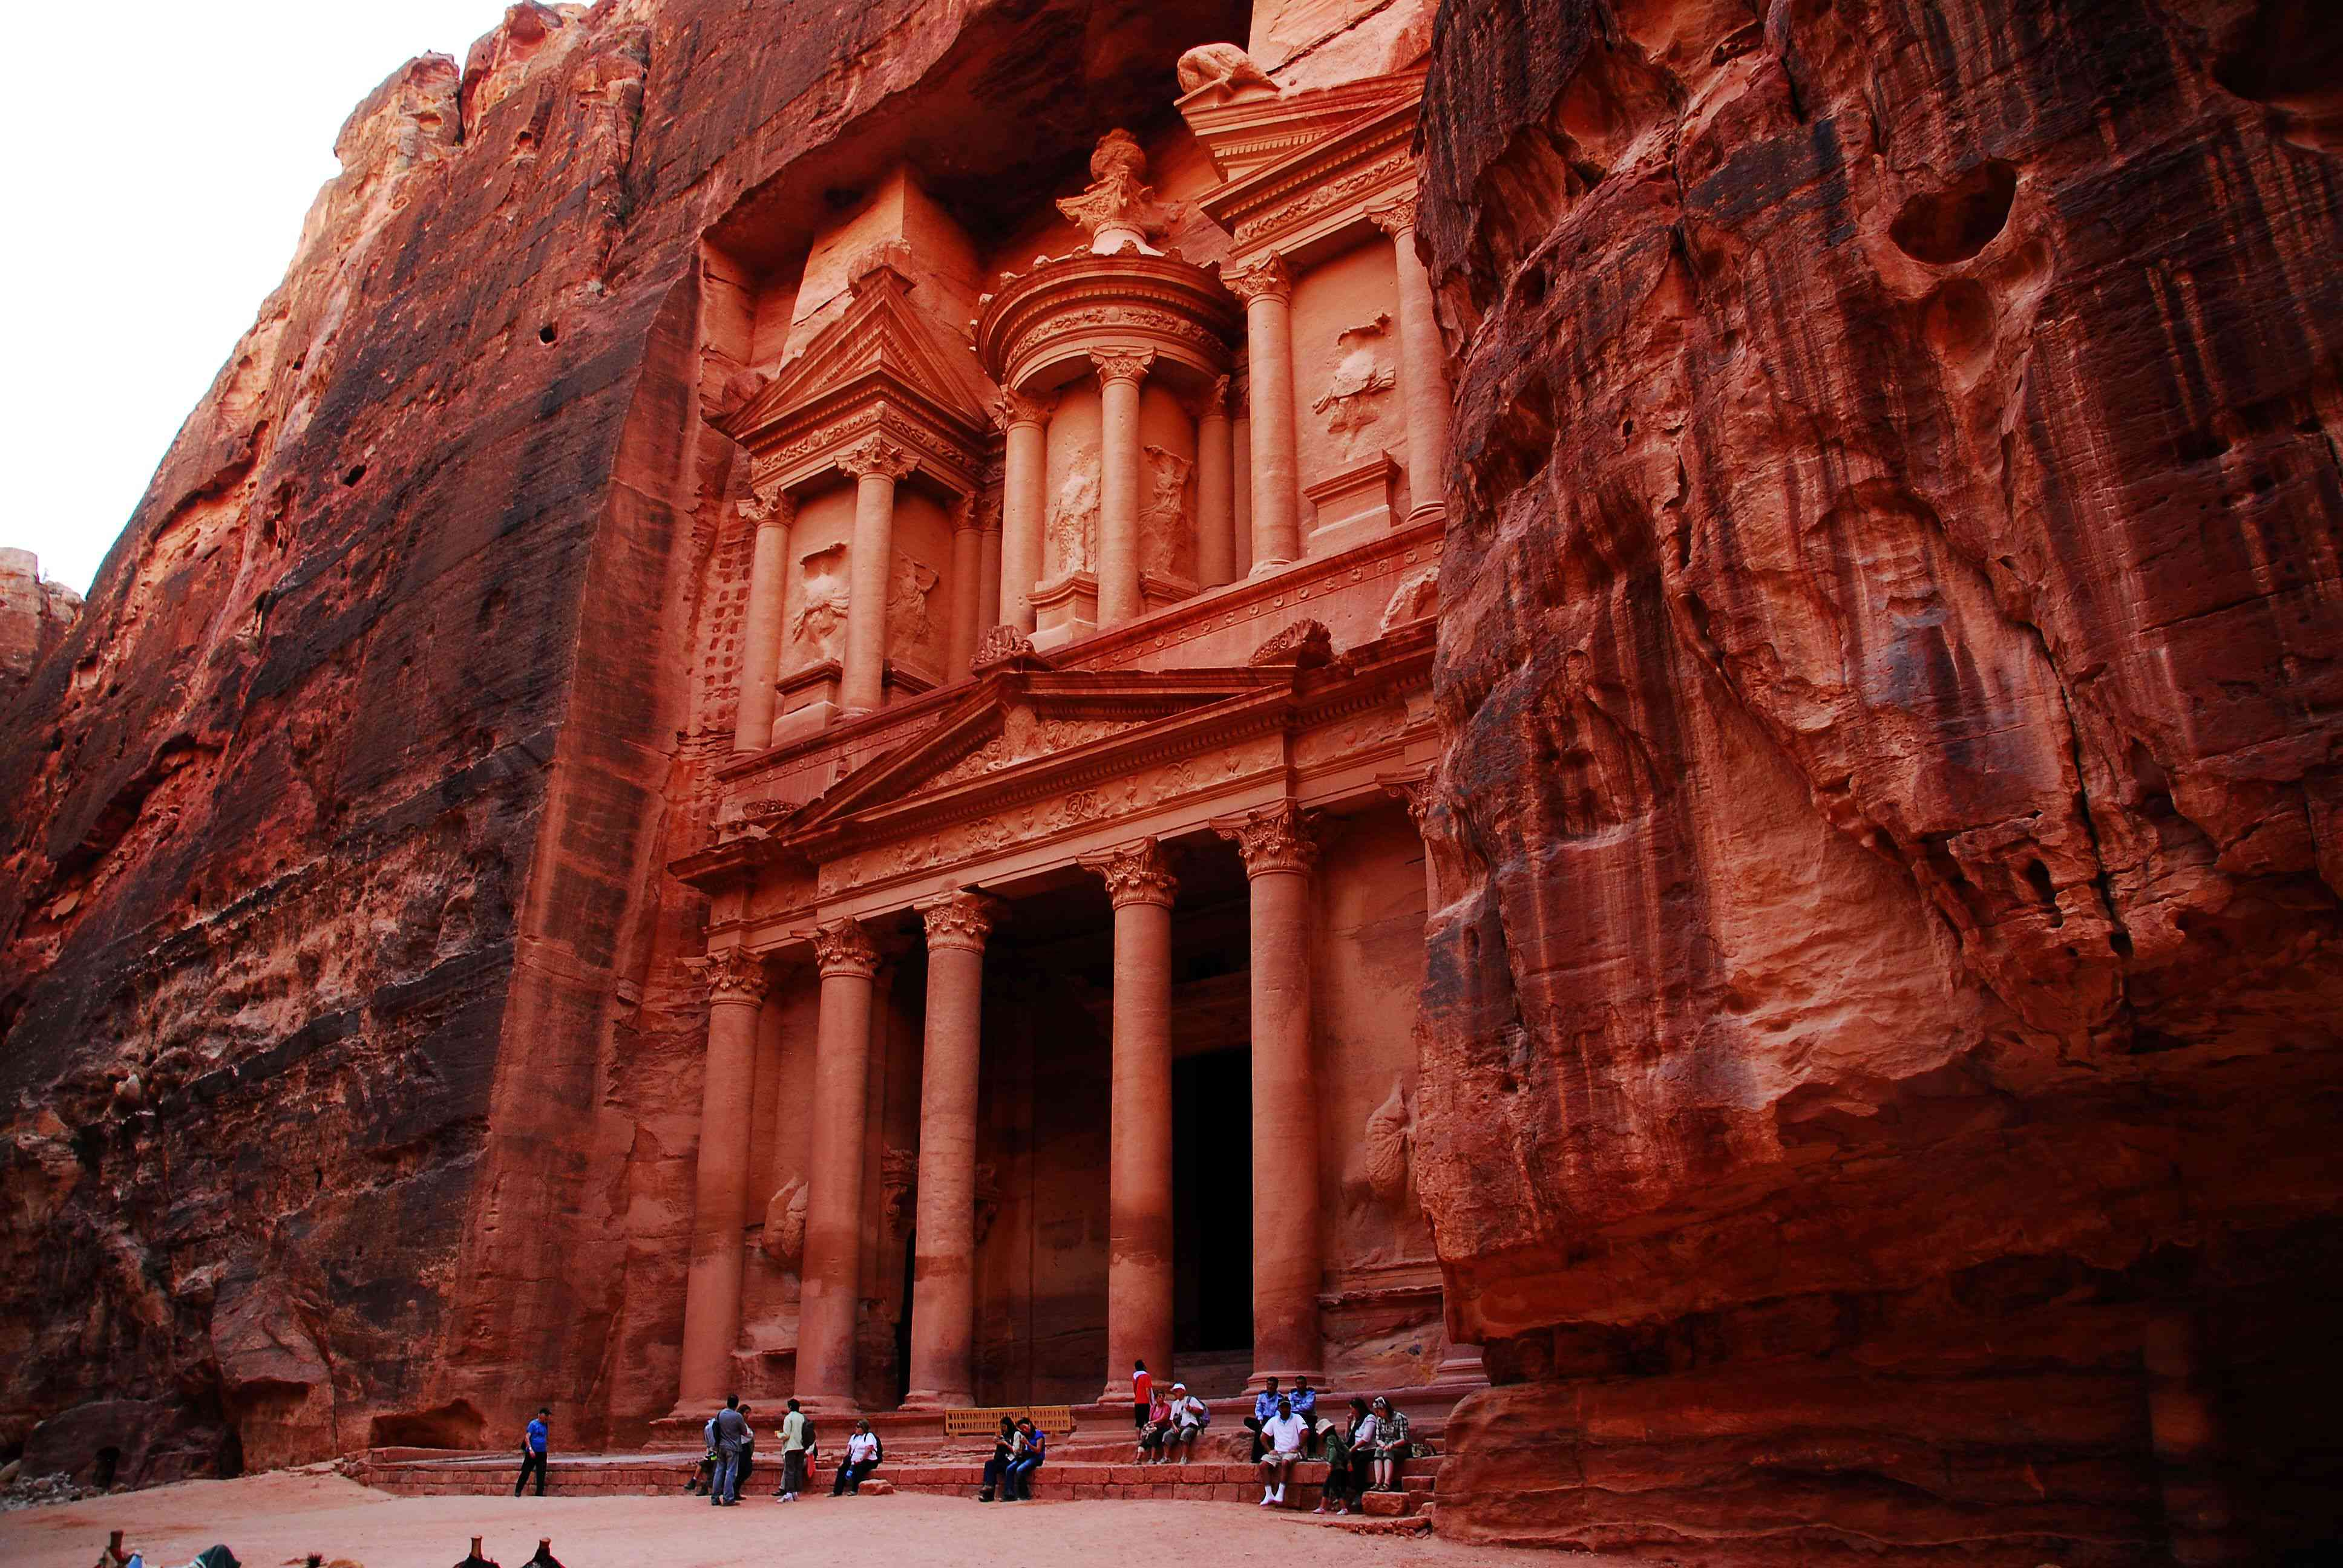 A close up of the entrance to Petra